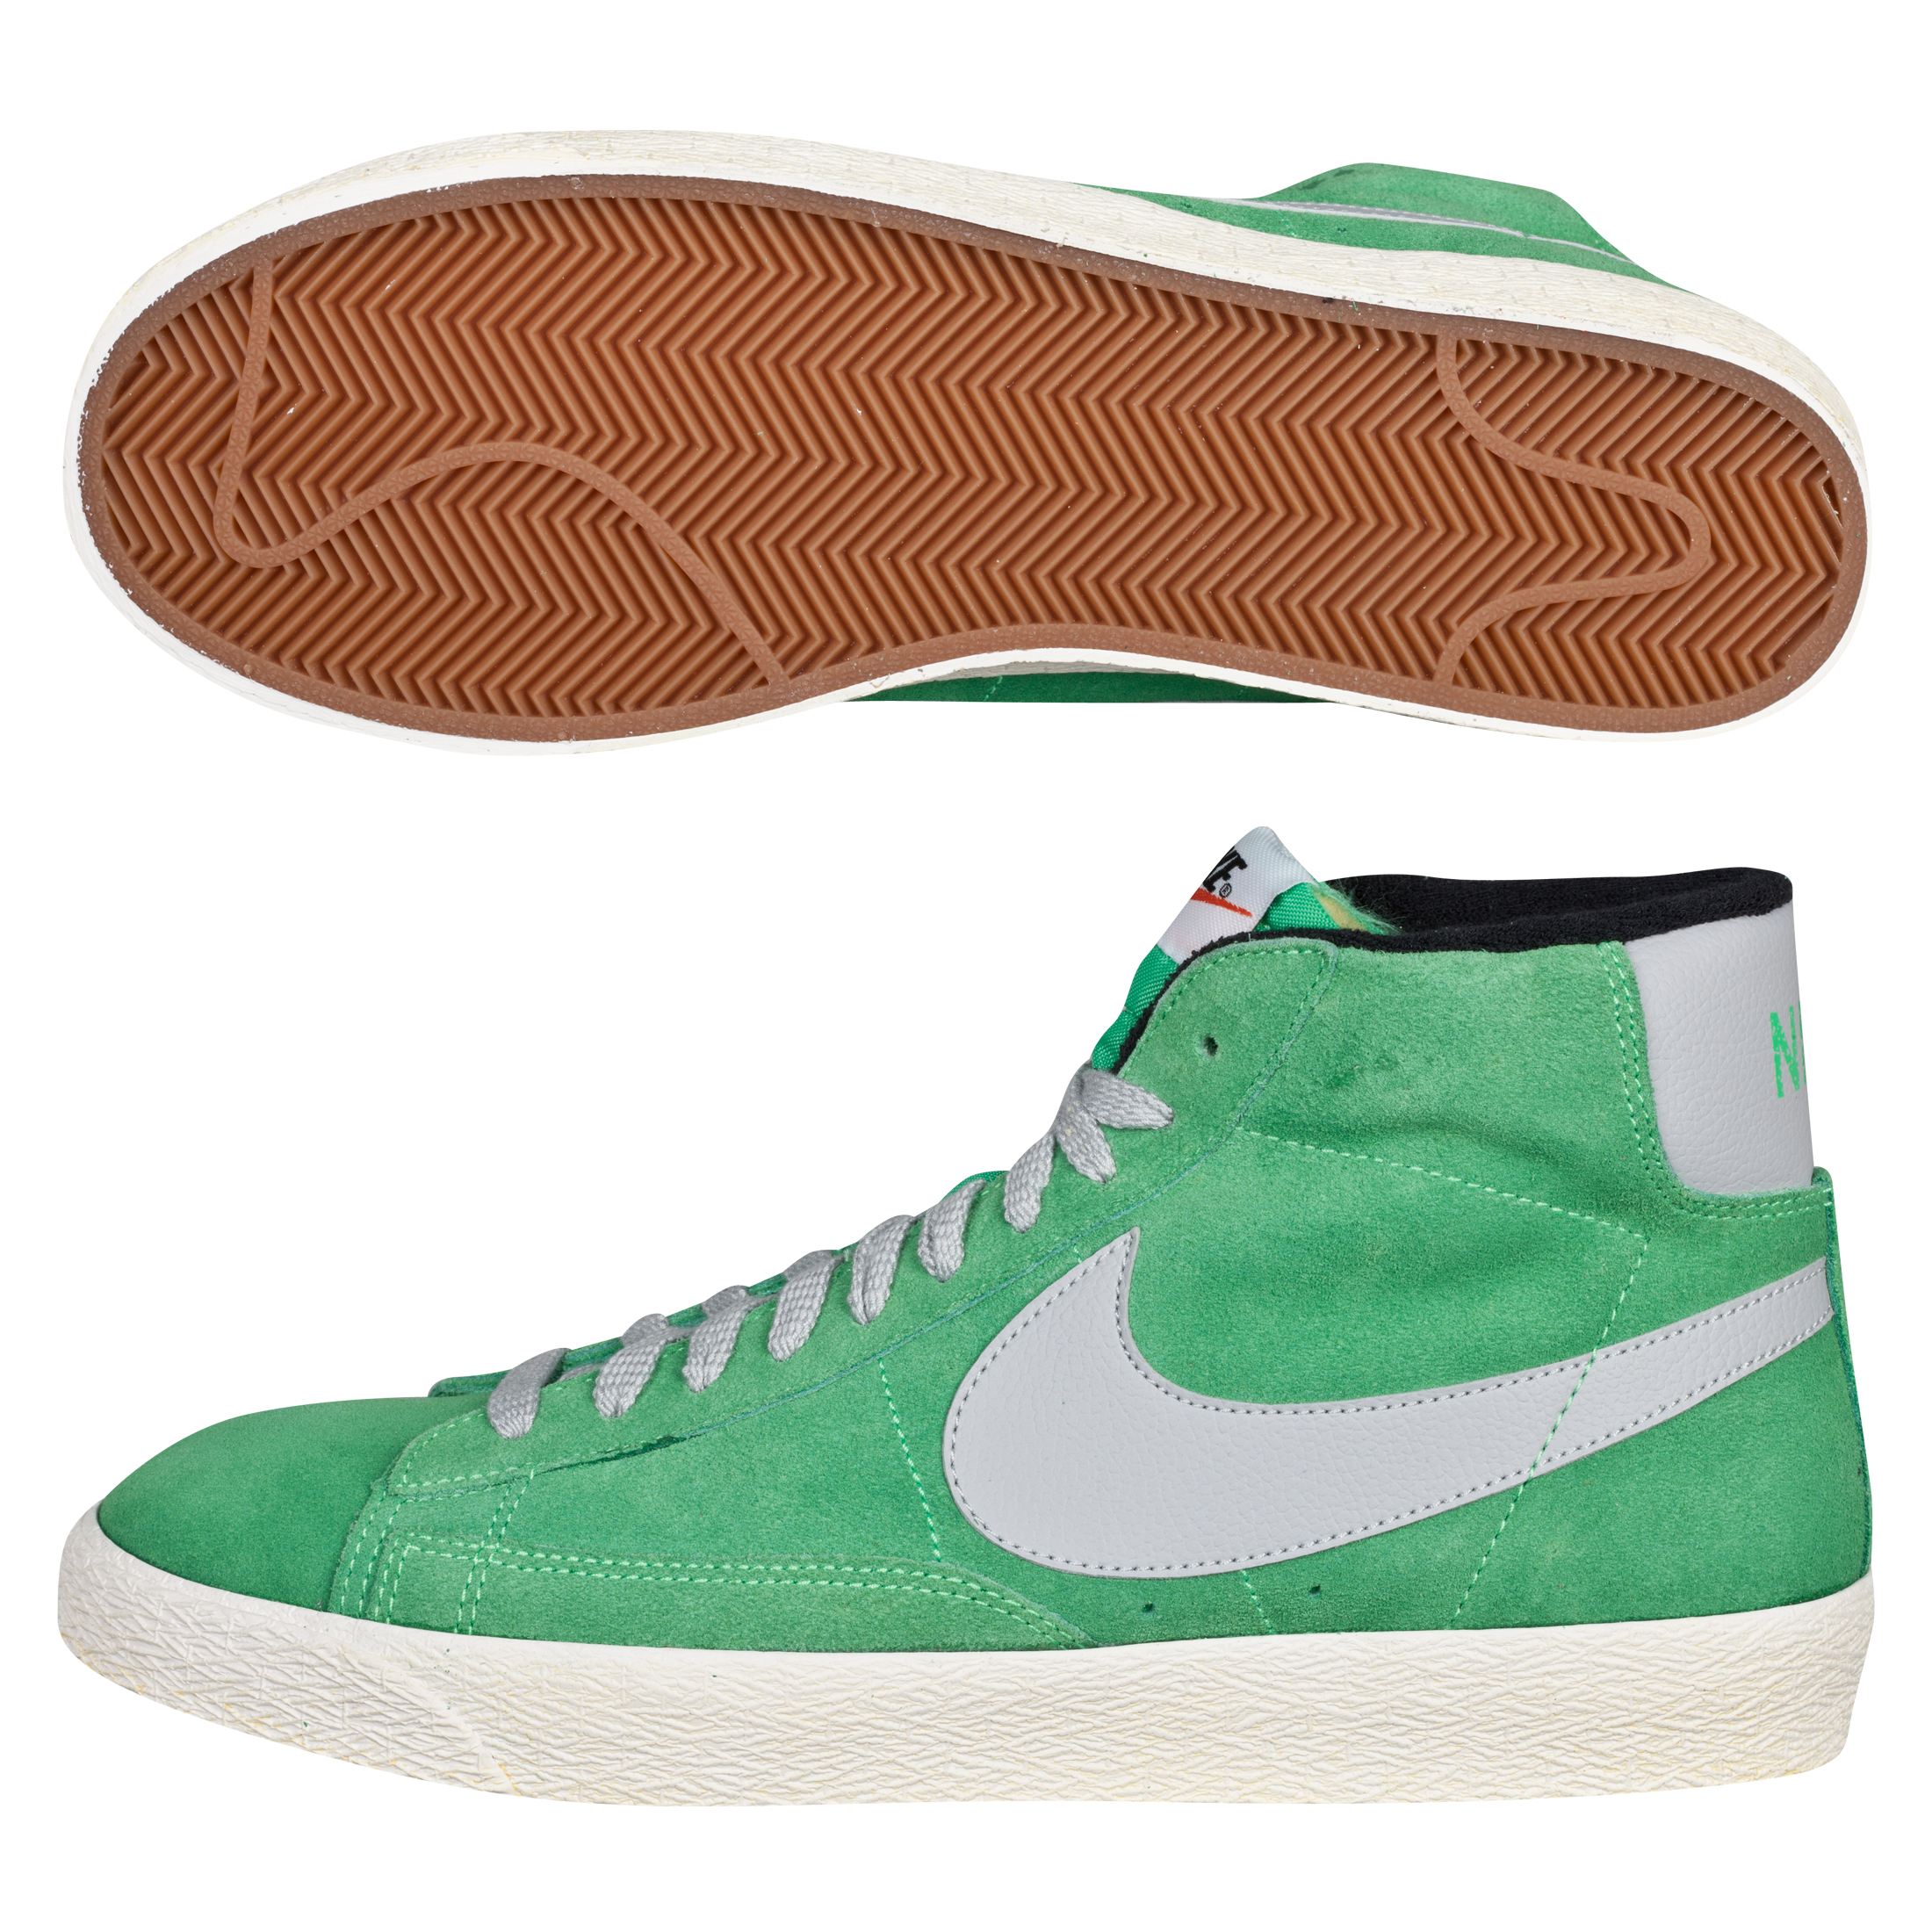 Nike Blazer Mid Premium Vintage Suede Trainer - Poison Green/Strata Grey-Black